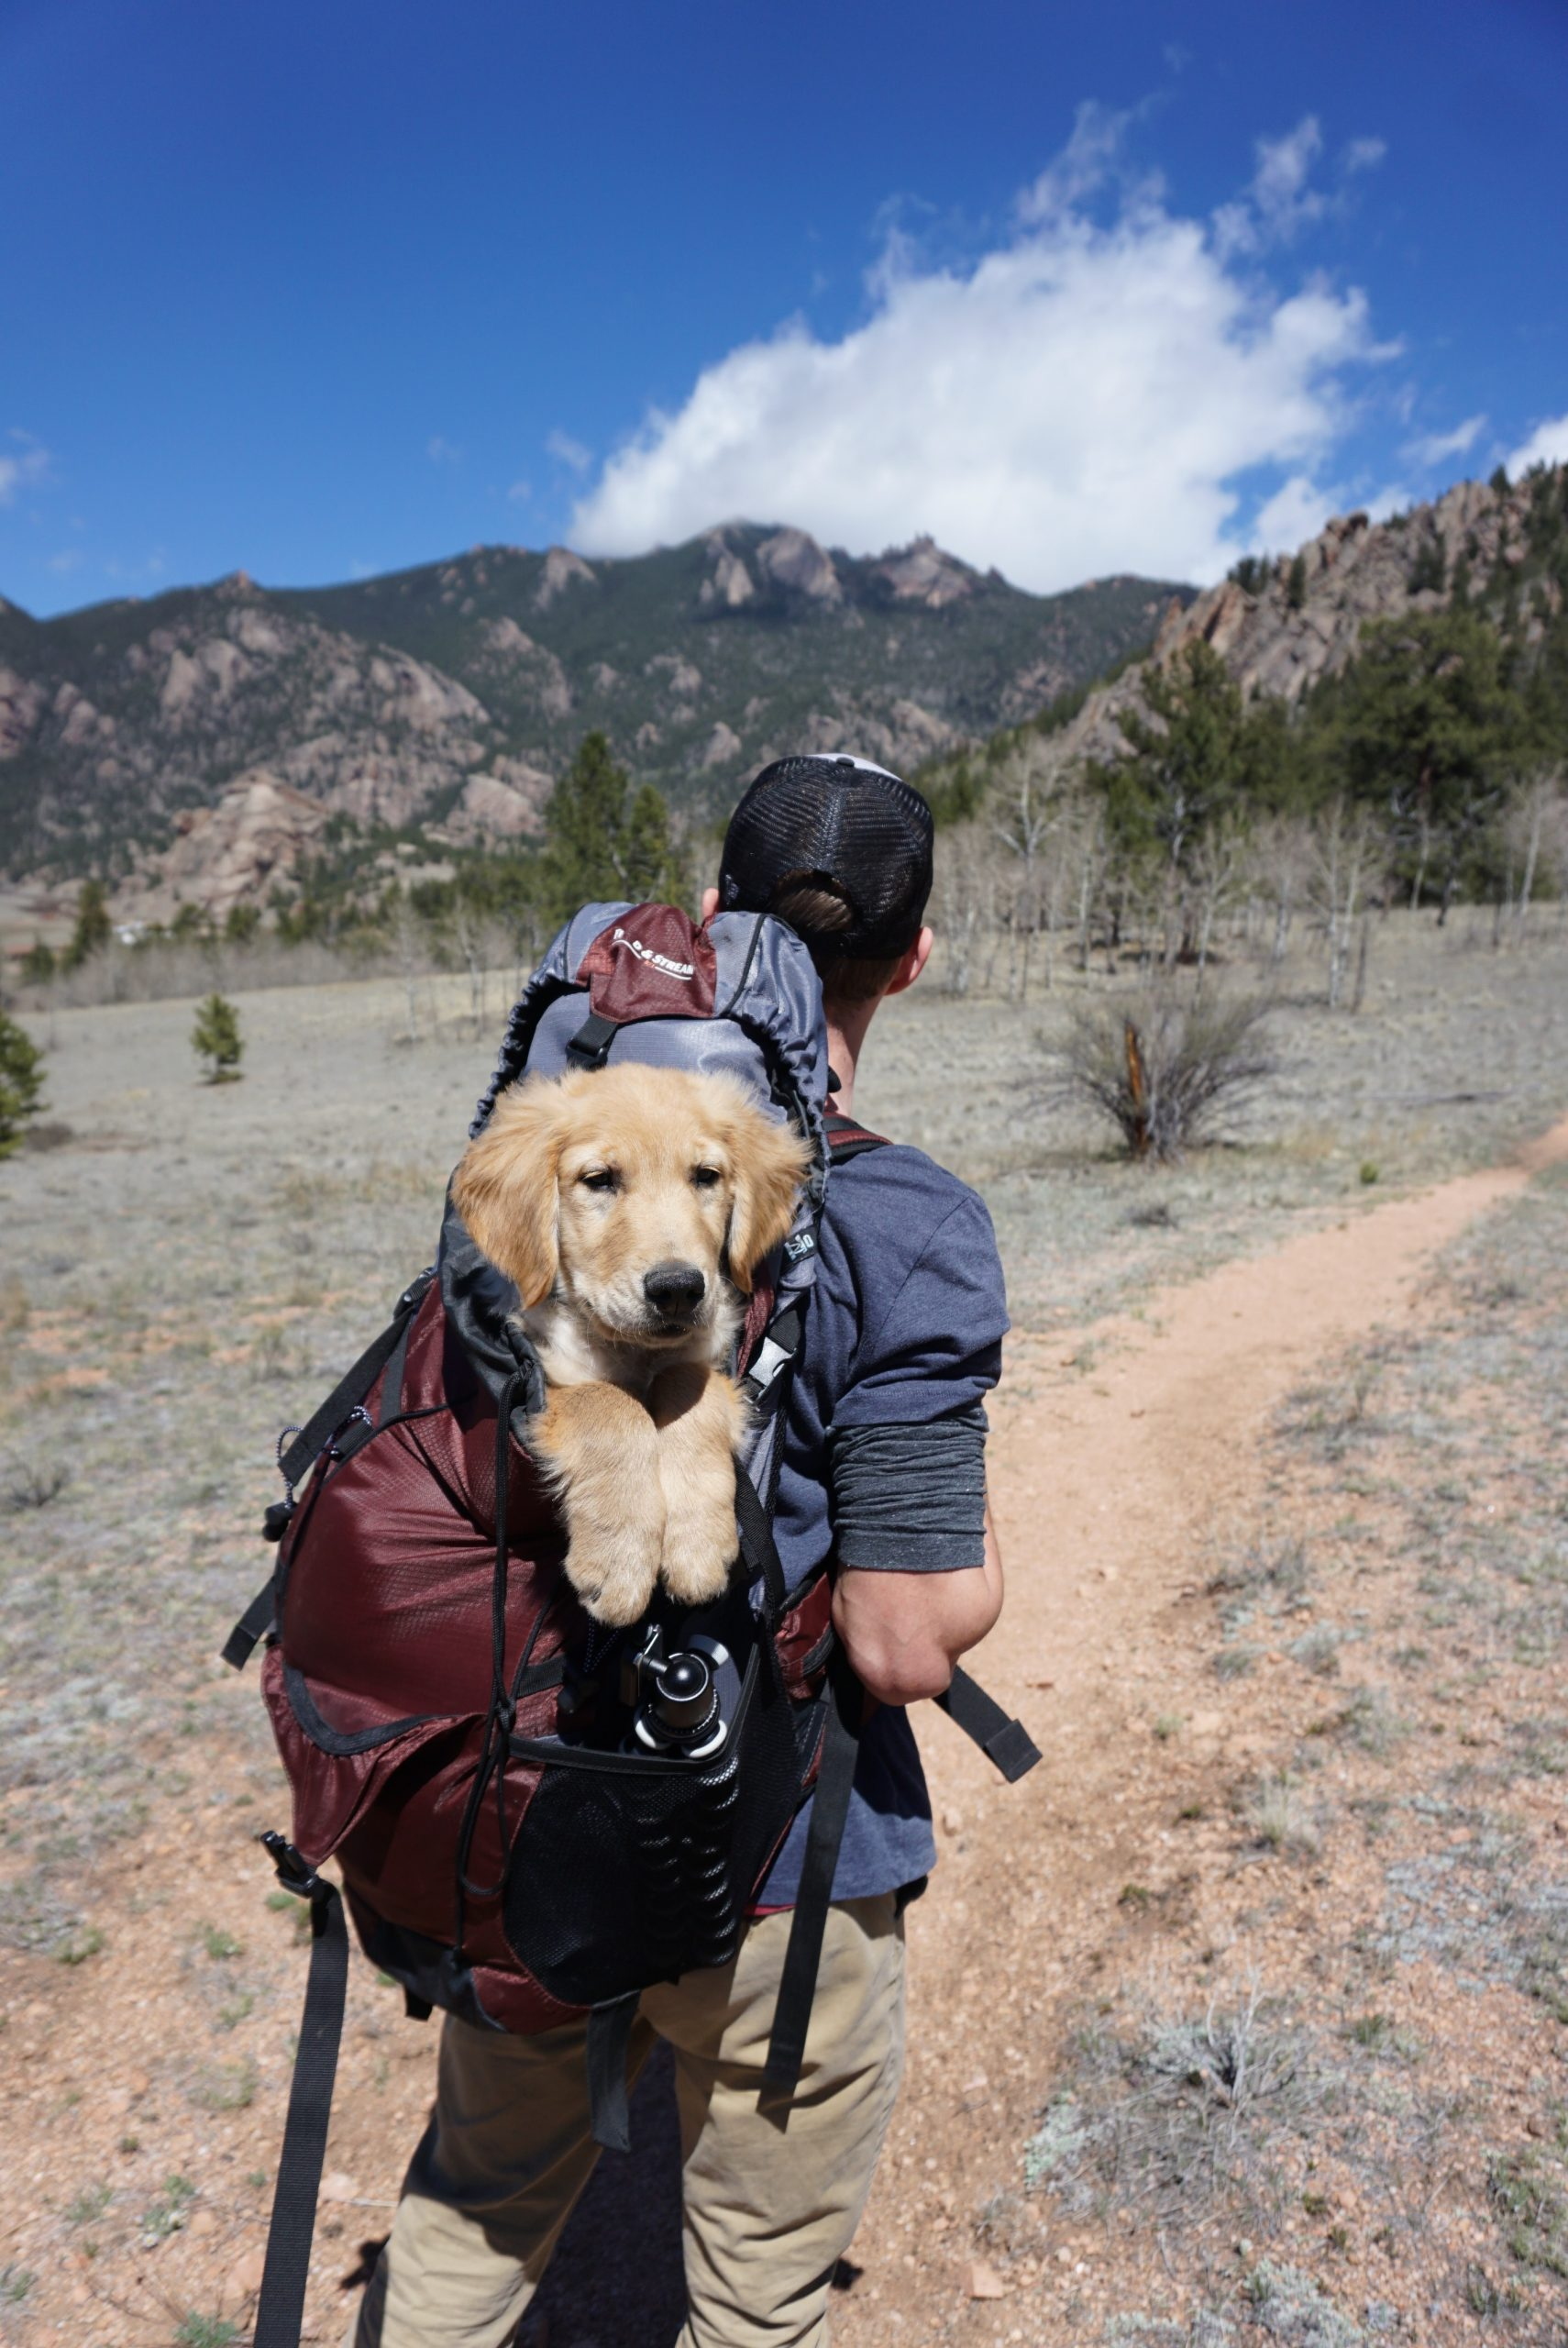 man hiking on a trail with a golden retriever puppy in his backpack, coping strategies, healthy coping mechanisms